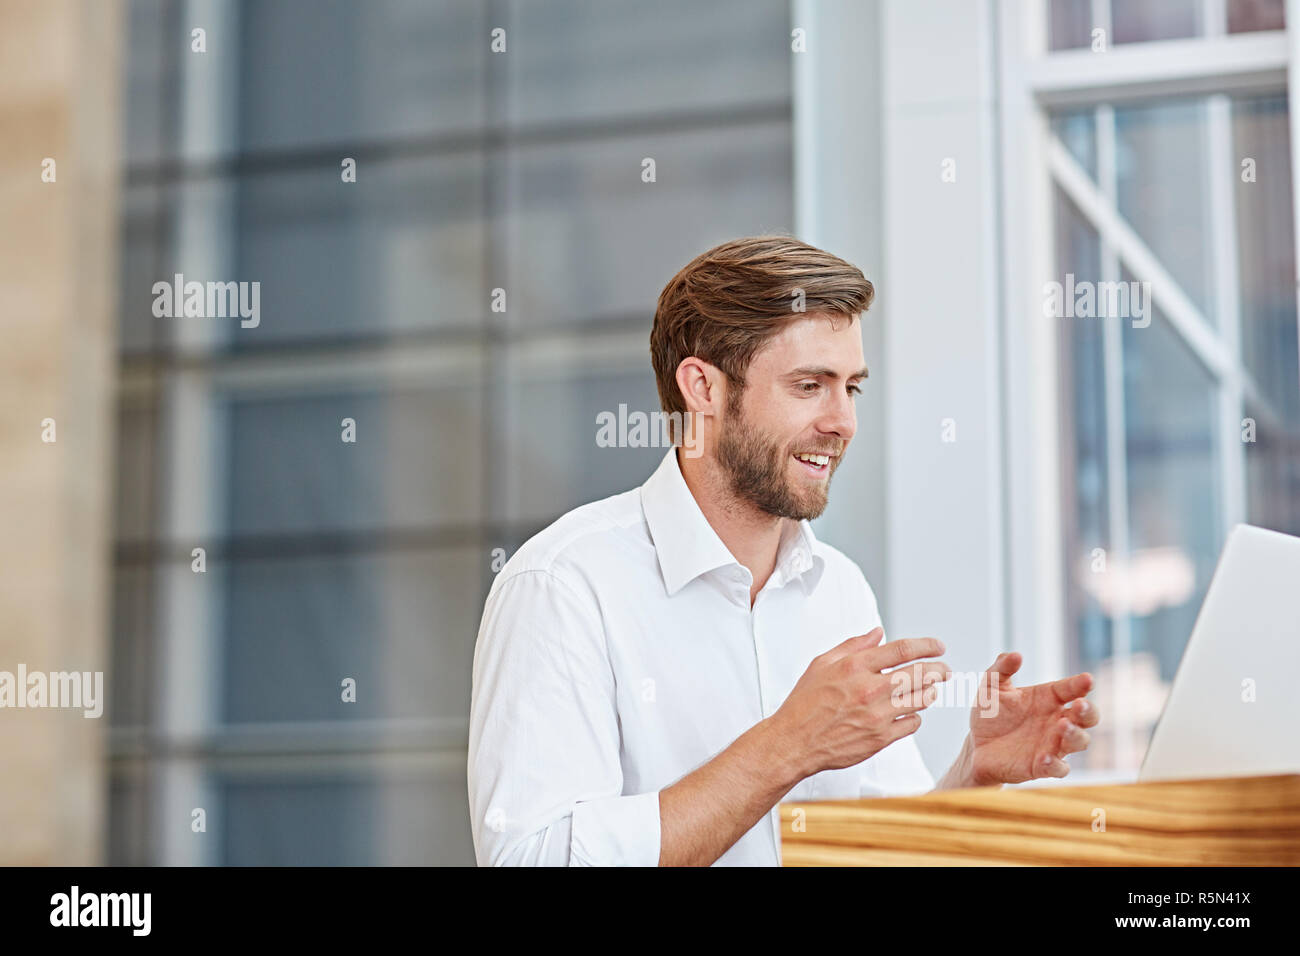 Long distance business relations have never been easier - Stock Image